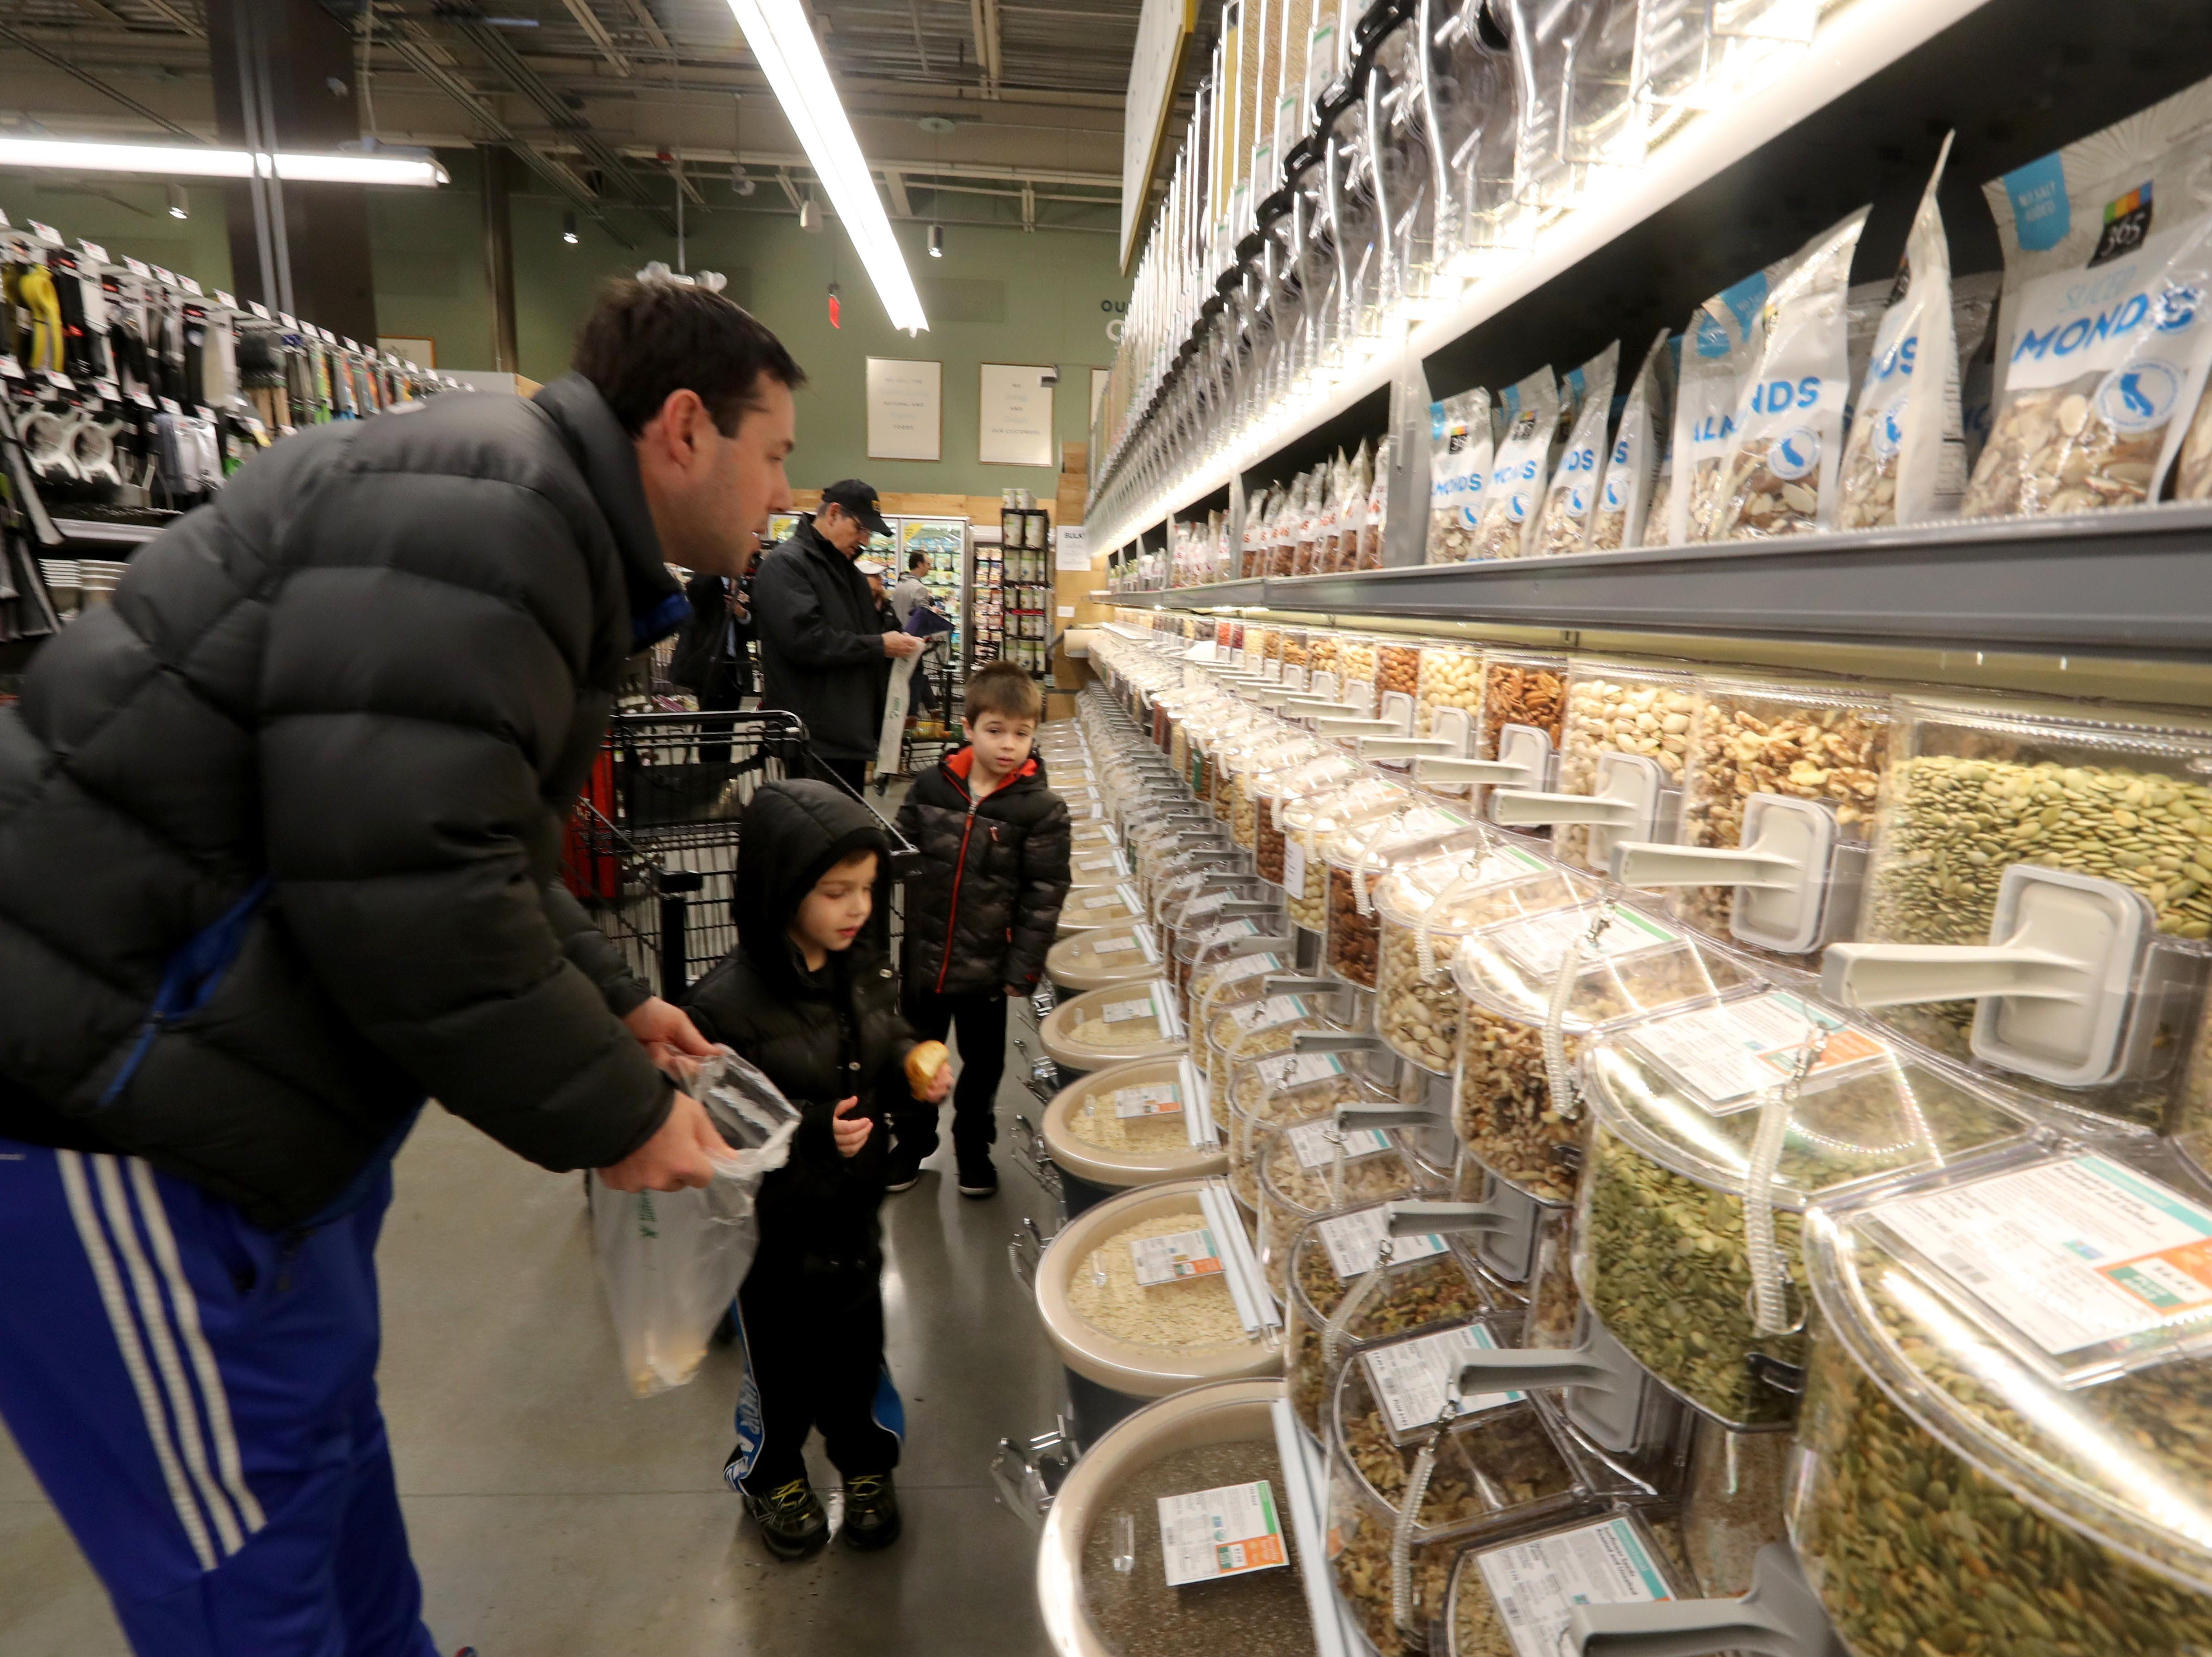 Brett Pearlman of Pleasantville and his sons Seth 4, and Russell 6, shop in the new Whole Foods in Chappaqua shortly after the grand opening of the supermarket at Chappaqua Crossing  Dec. 15, 2018. The 40,000 square foot store opened to shoppers on the site of the formers Readers Digest headquarters. The New Castle Town Board and Planning Board approved a temporary traffic plan for the Route 117-Roaring Brook Road intersection that allowed the store to open.